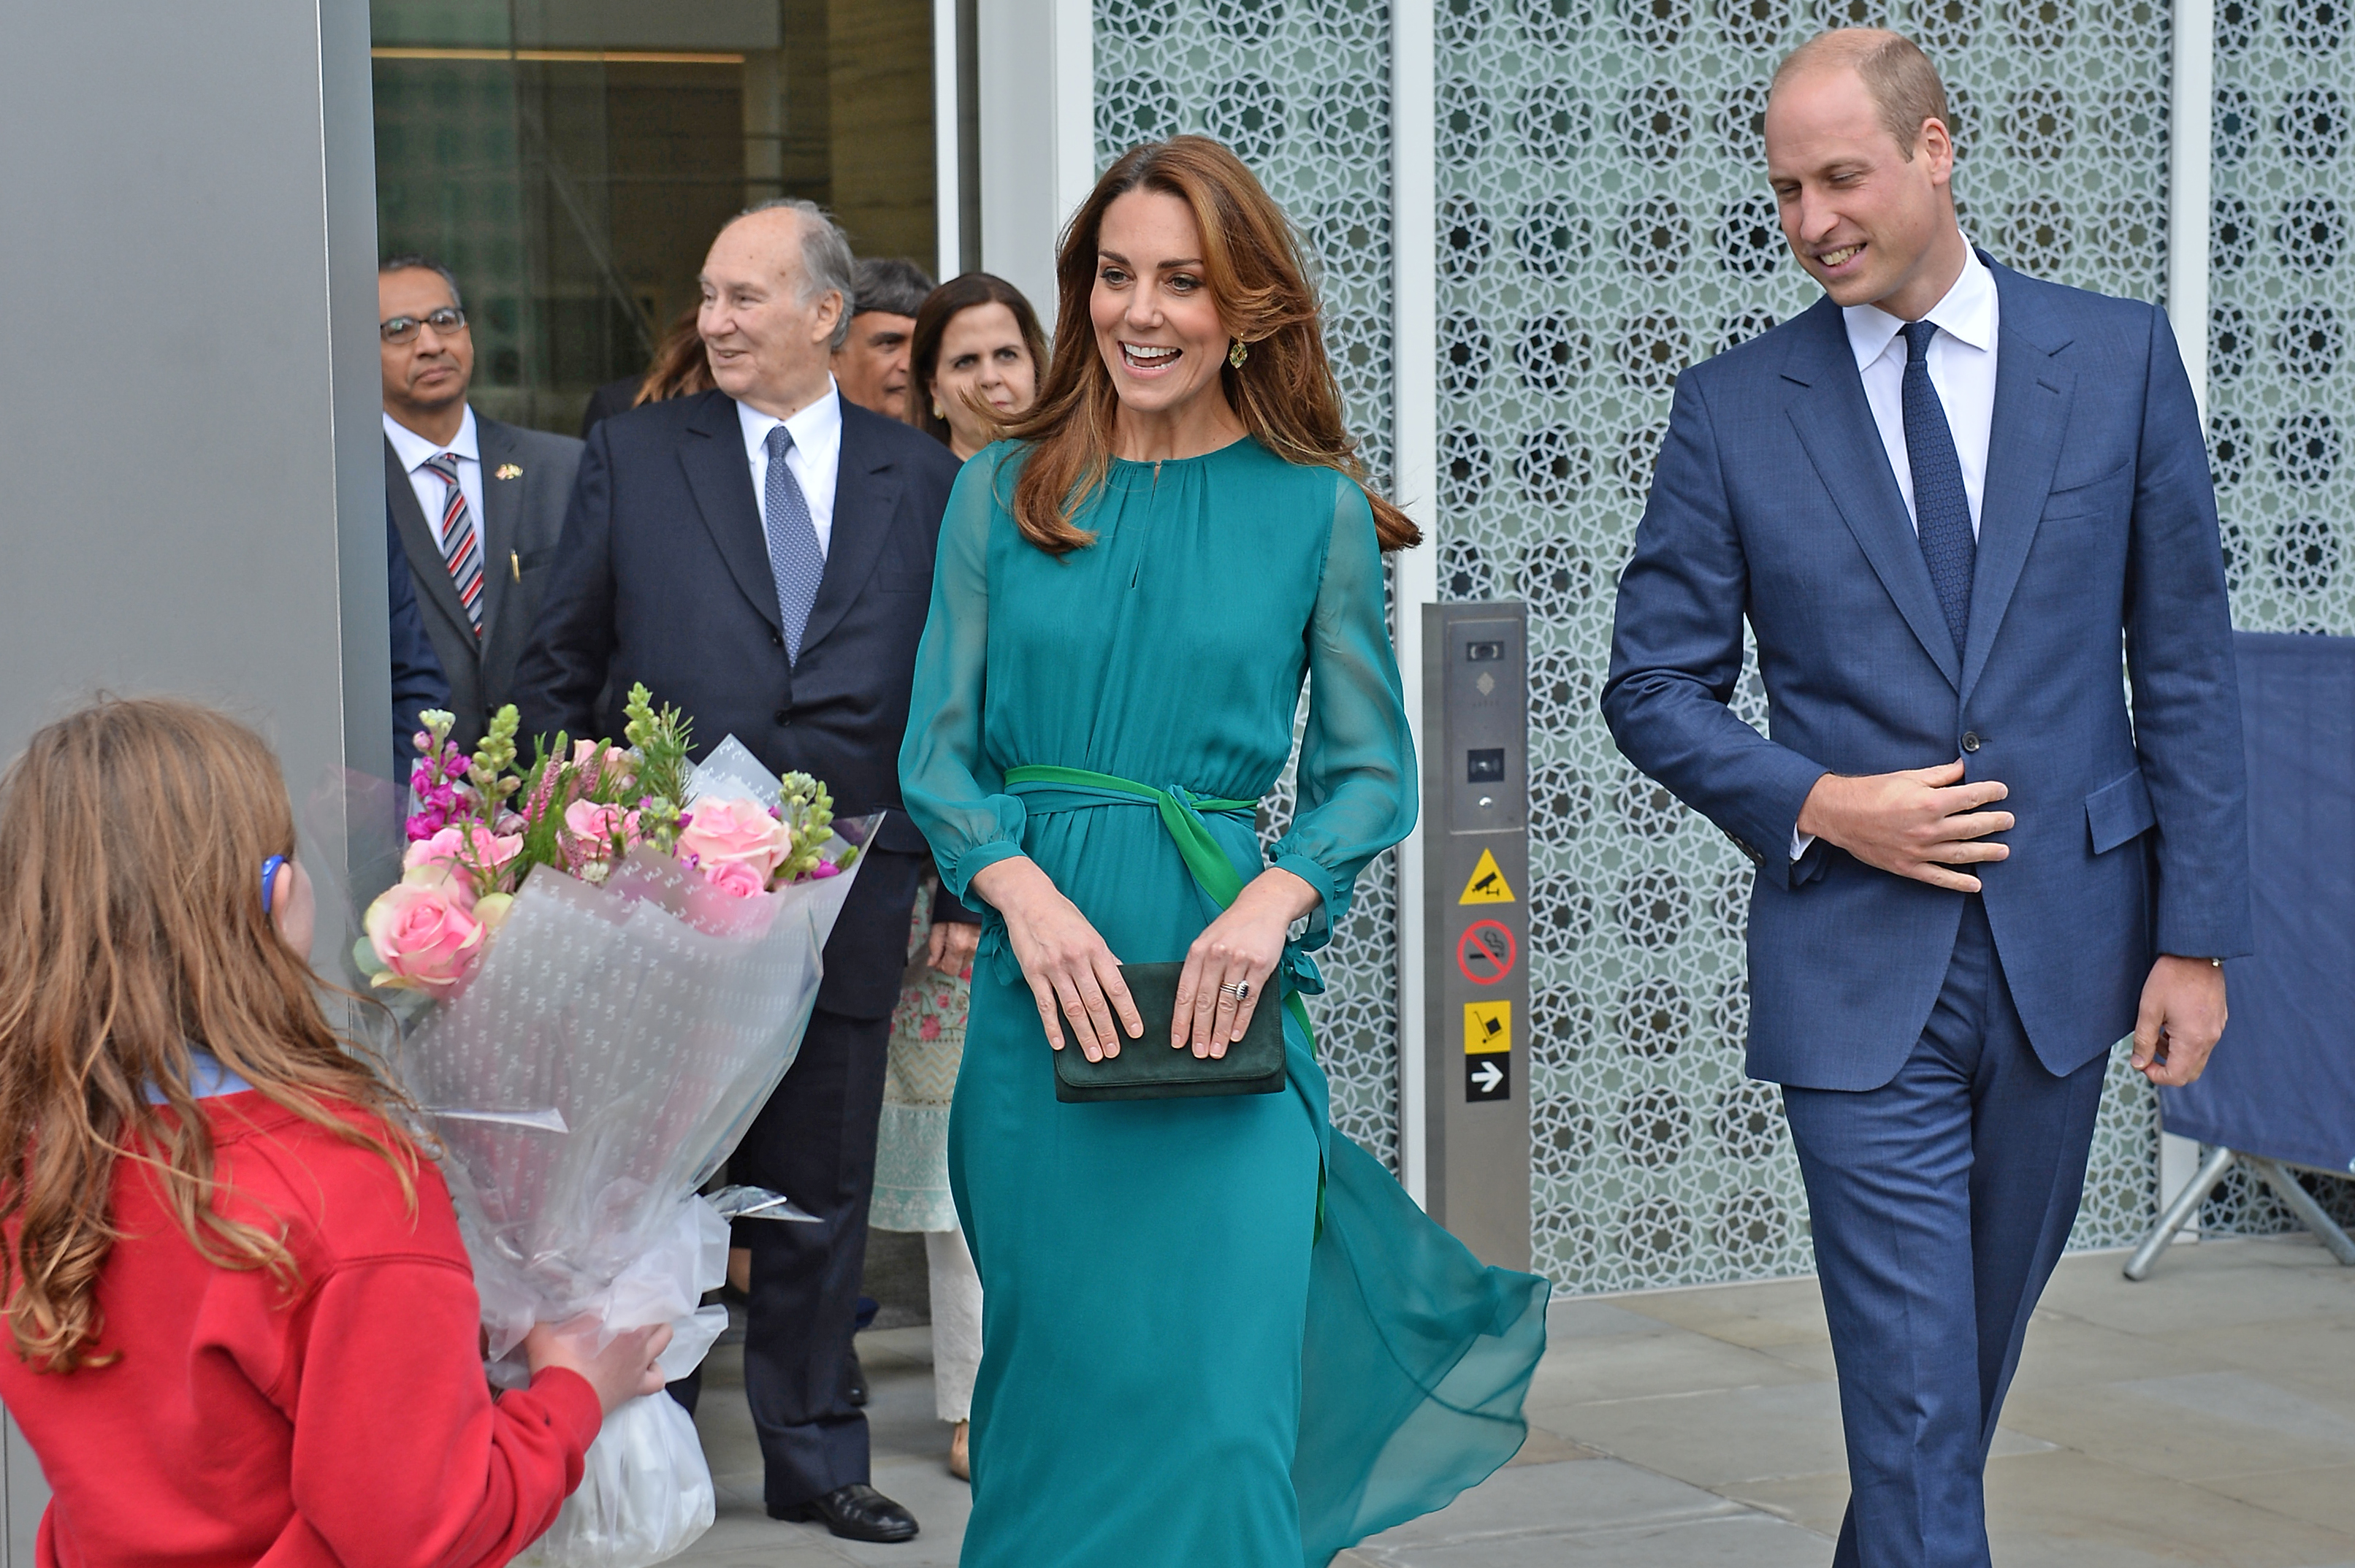 Kate Middleton and Prince William to arrive in Pakistan today; 1,000 police officers in action for royal tour